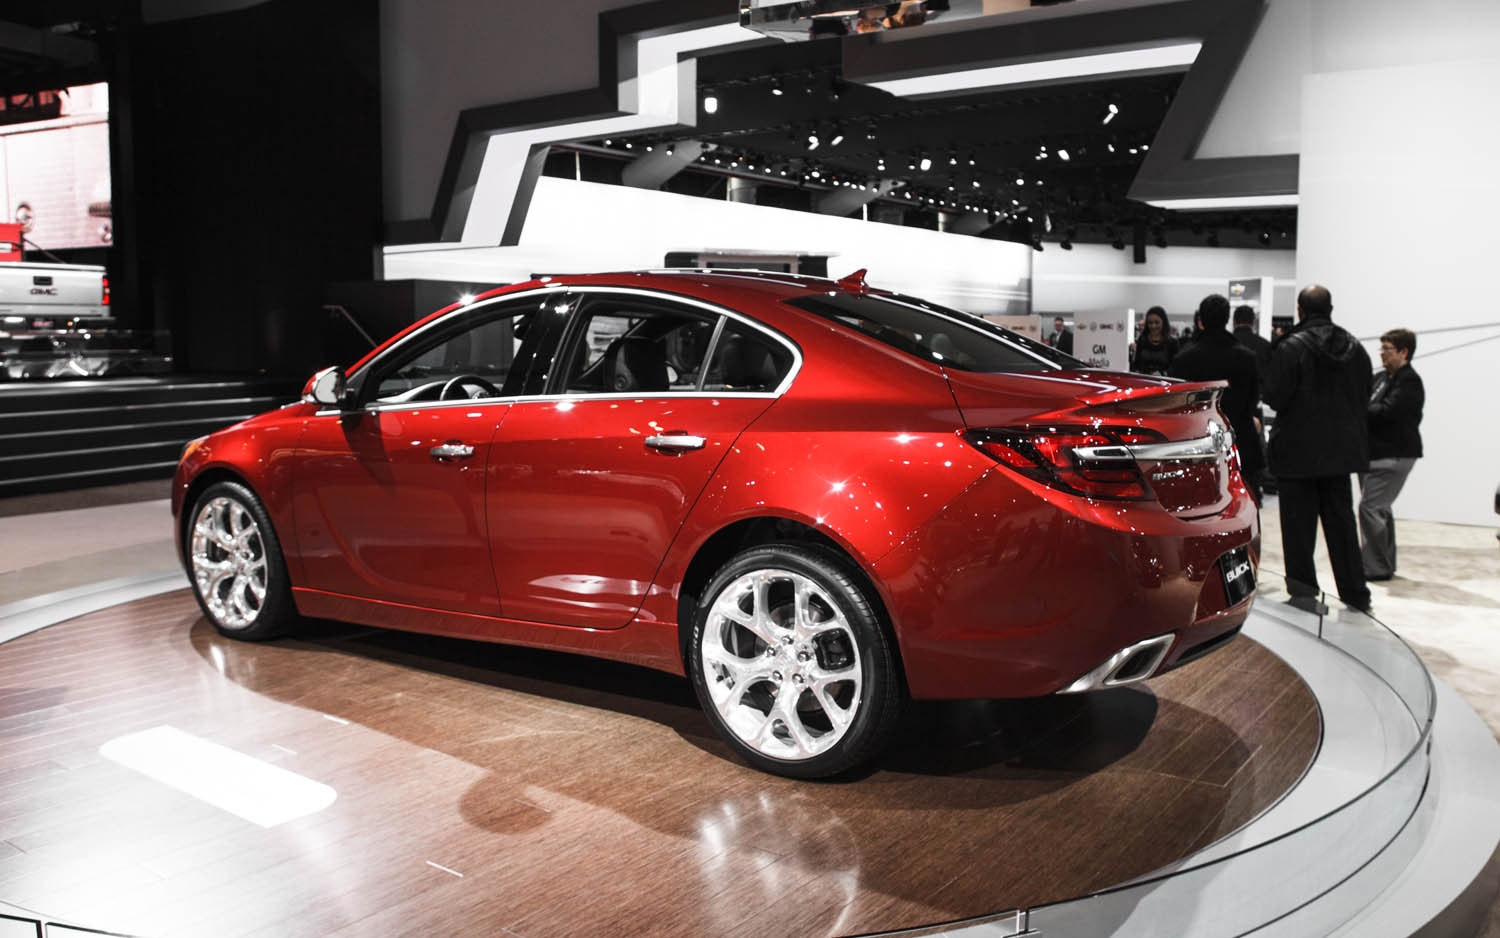 2014 Buick Regal First Look - Automobile Magazine